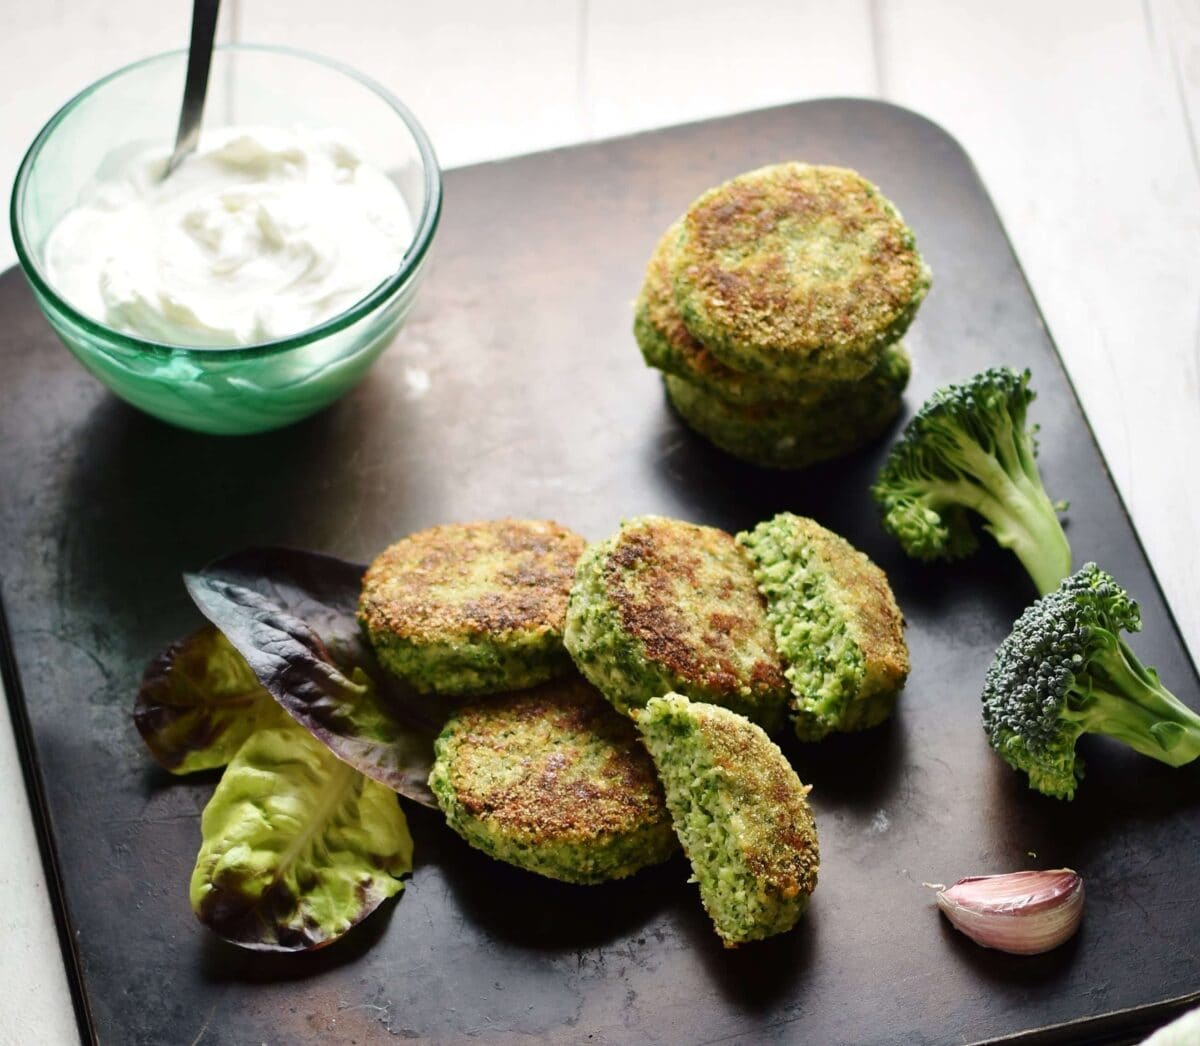 Top down view of broccoli patties on black tray with broccoli florets, garlic clove and dish with yogurt in background.